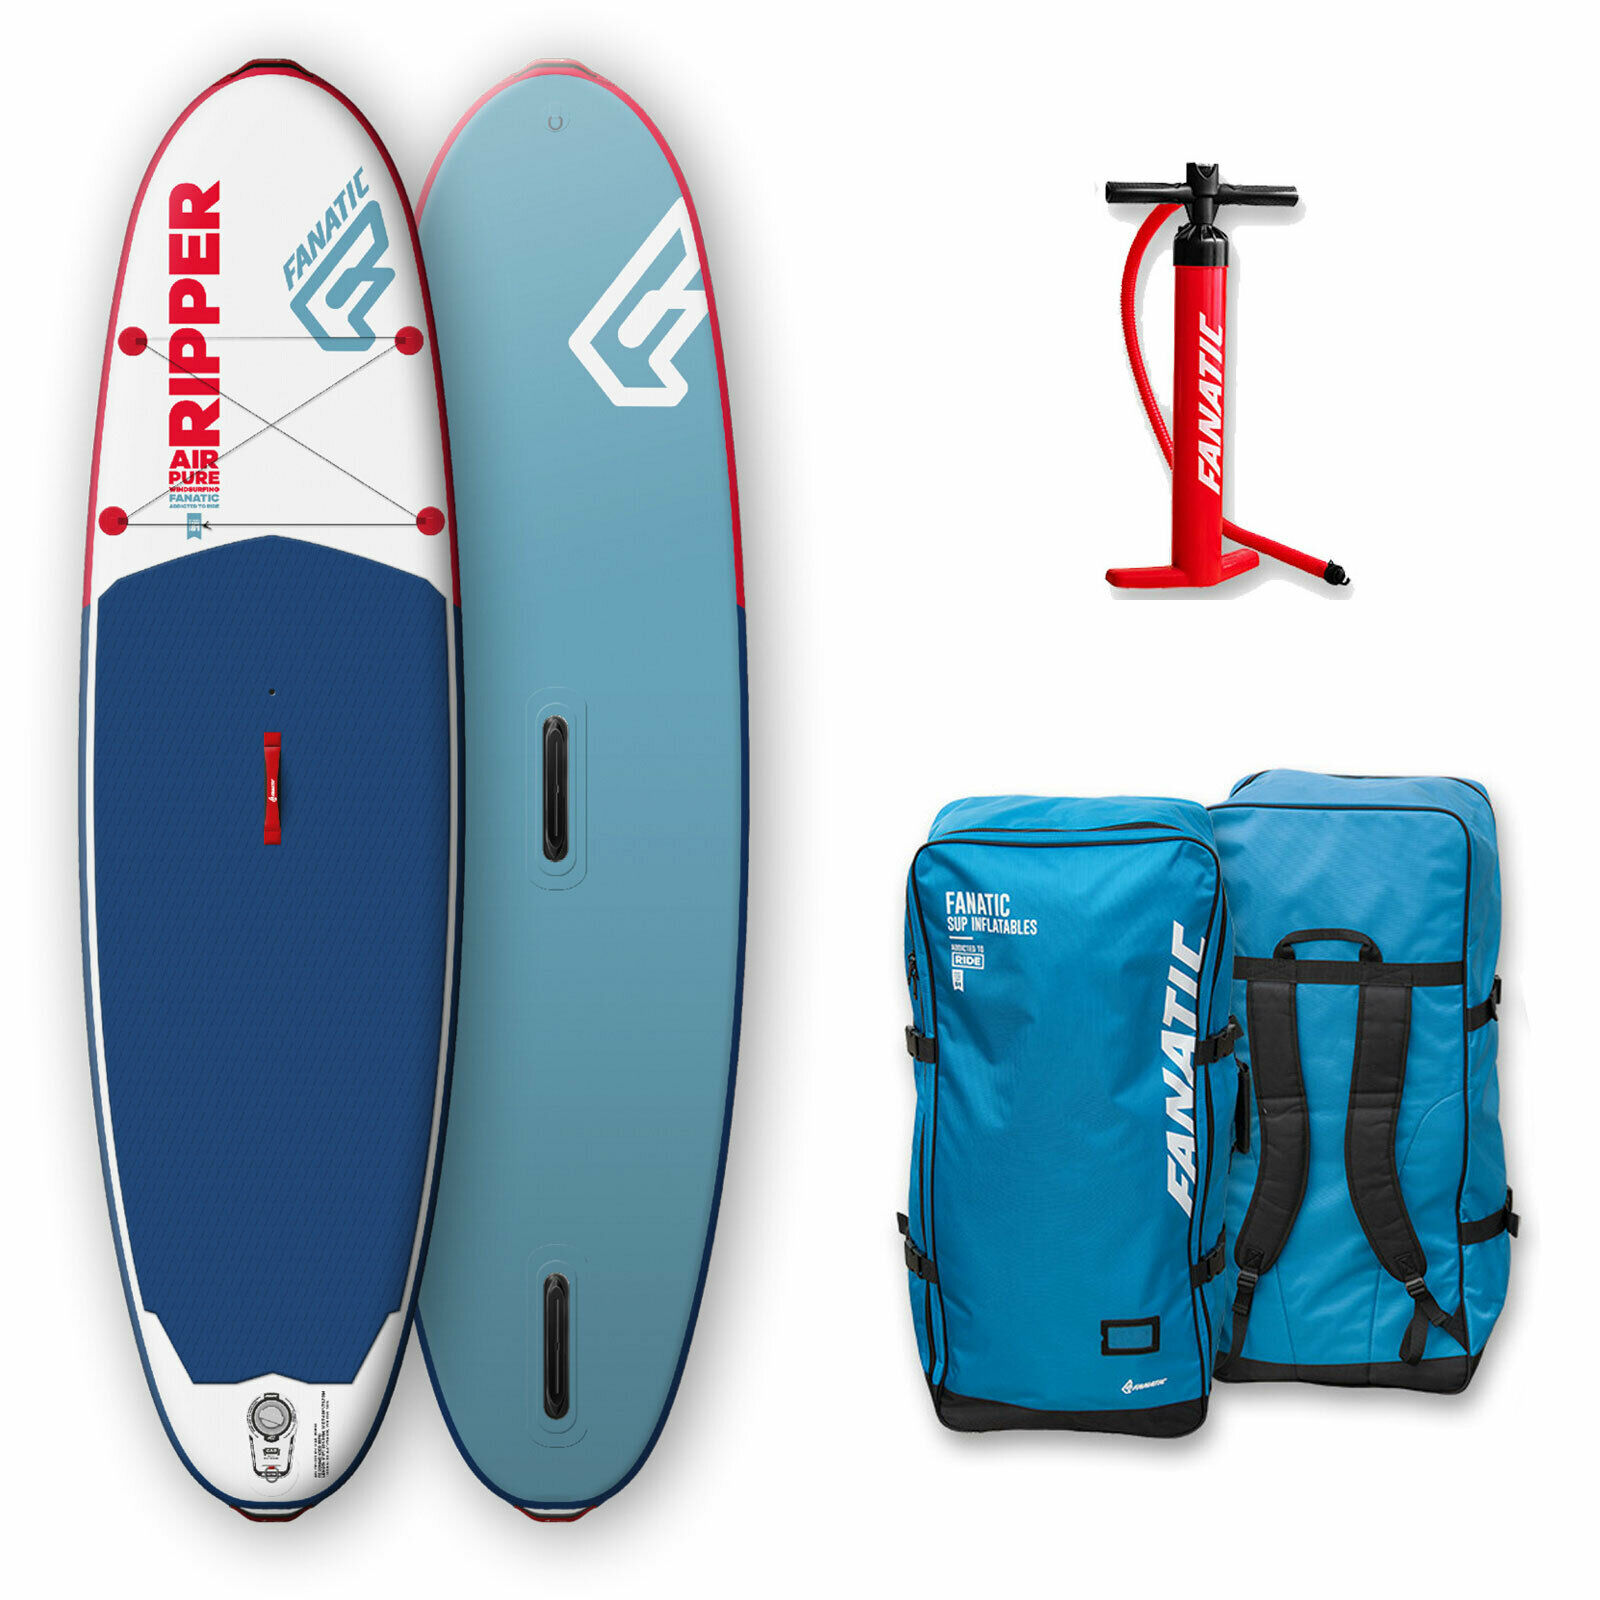 Fanatic Hinchable Ripper Air Windsurf Pure Kinder-Sup Tabla de Surf I-Sup